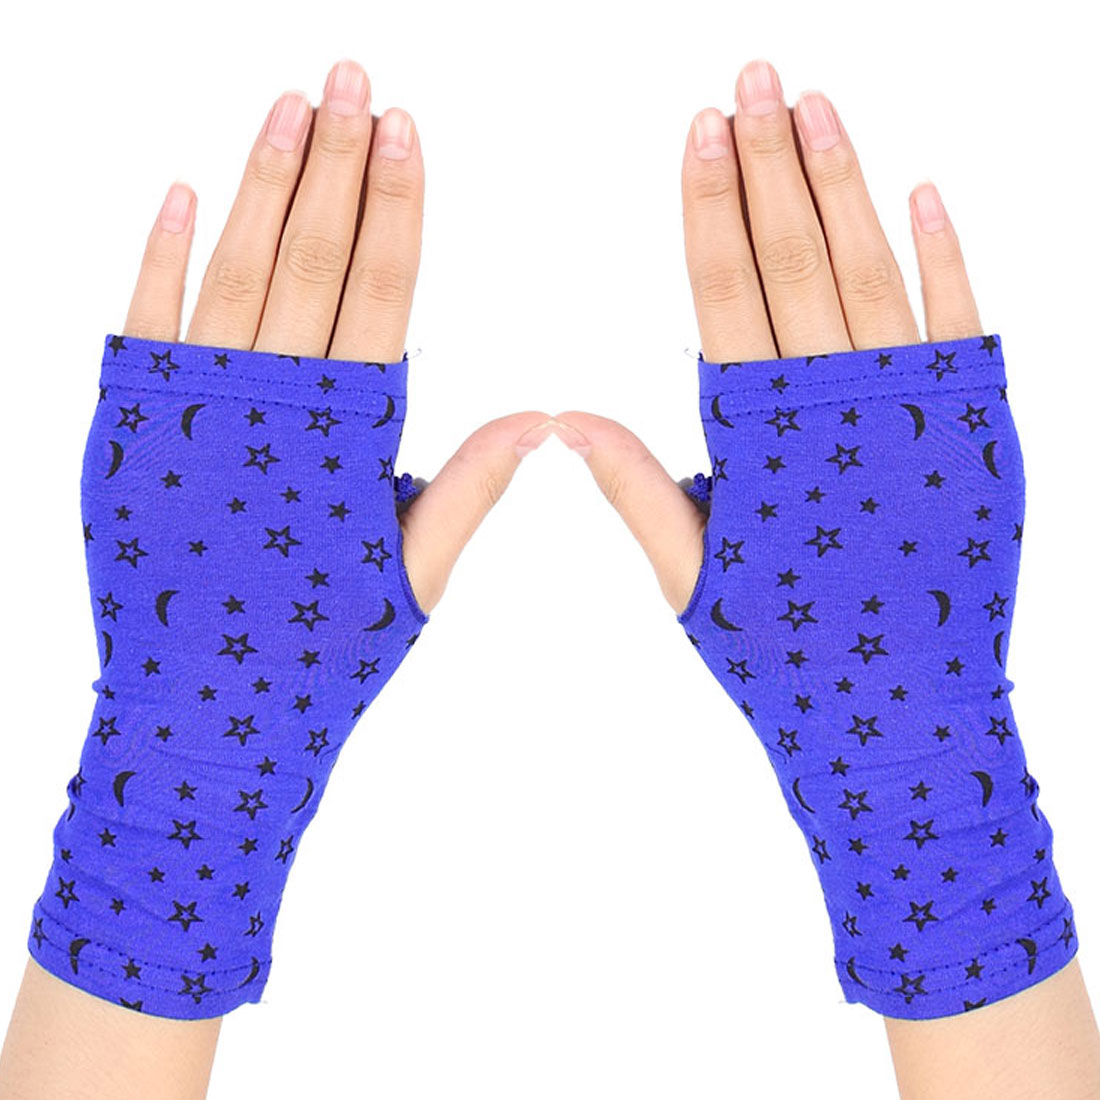 Women Black Stars Pattern Short Wrist Fingerless Gloves Mittens Blue Pair